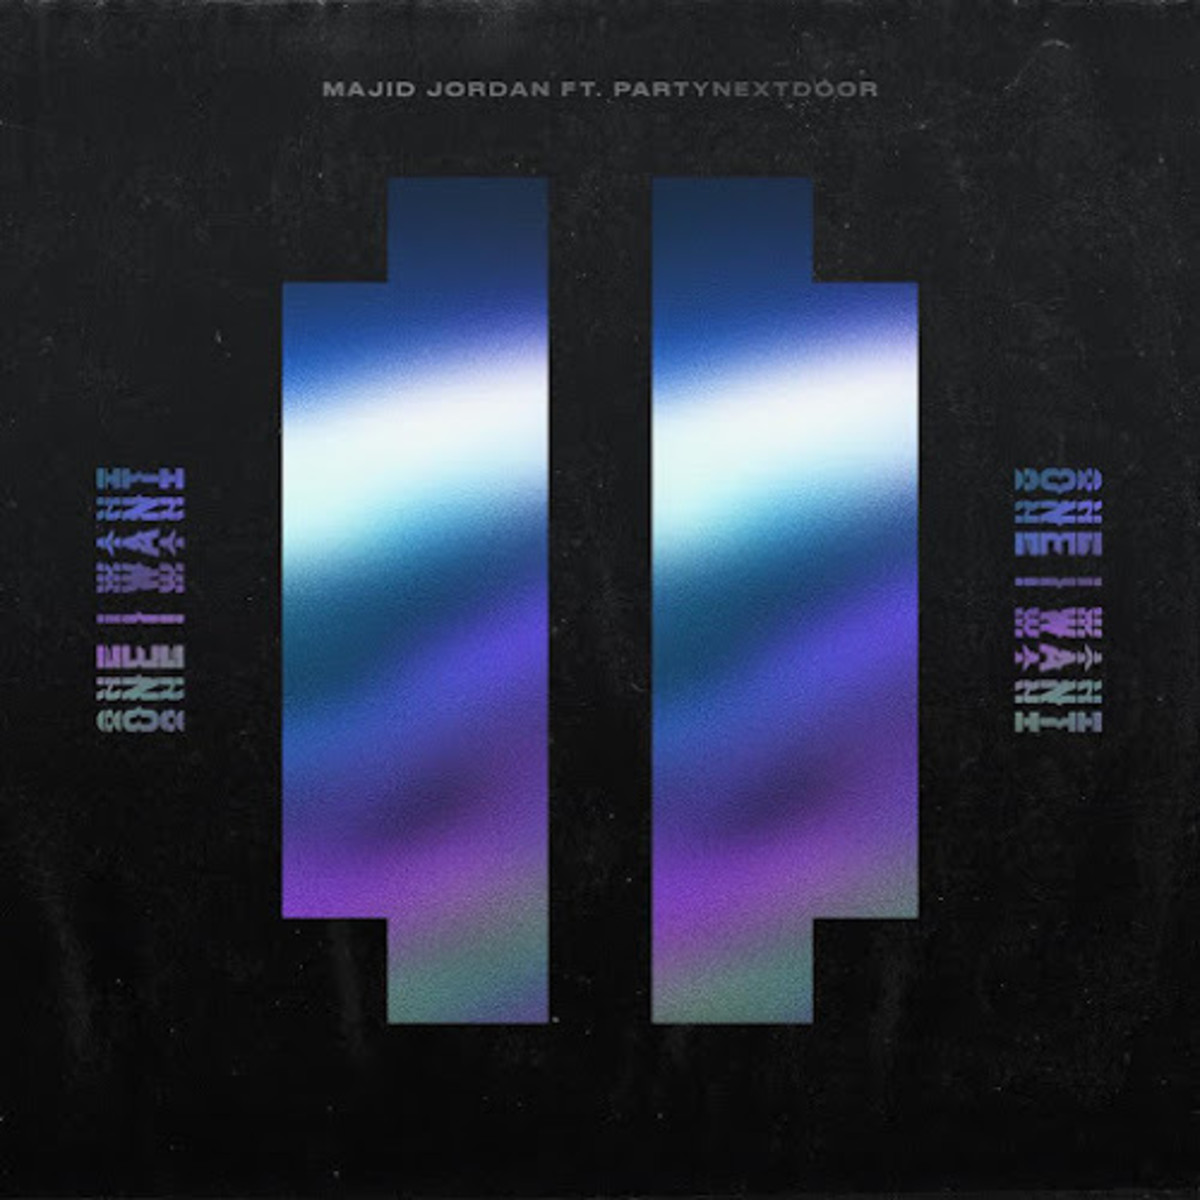 majid-jordan-one-i-want.jpg